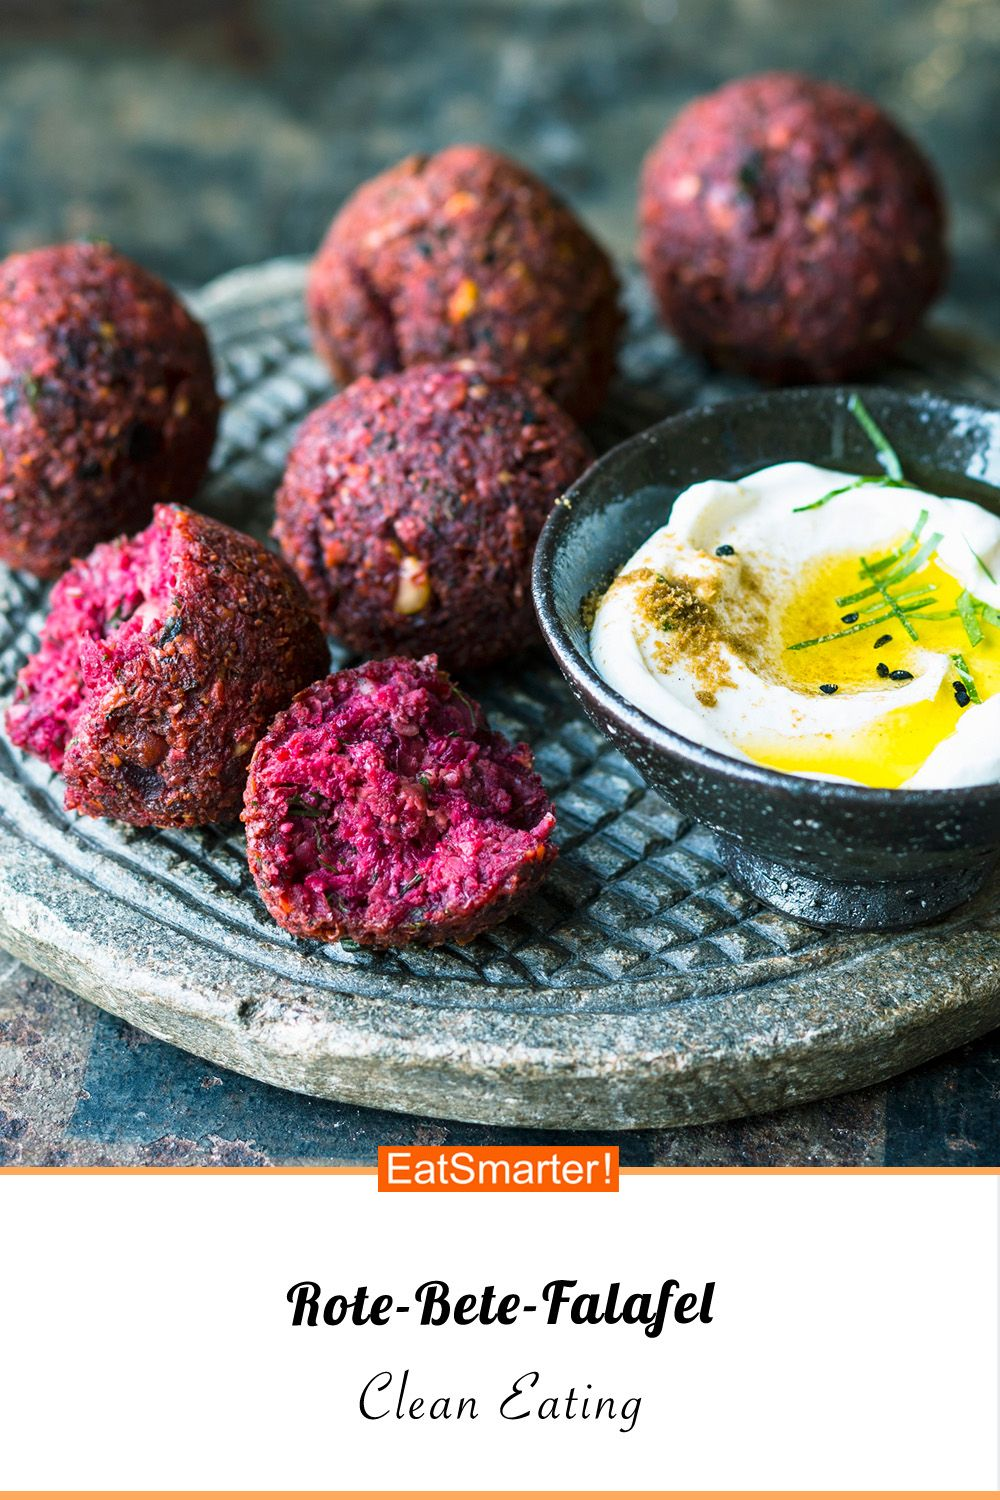 Photo of Rote-Bete-Falafel